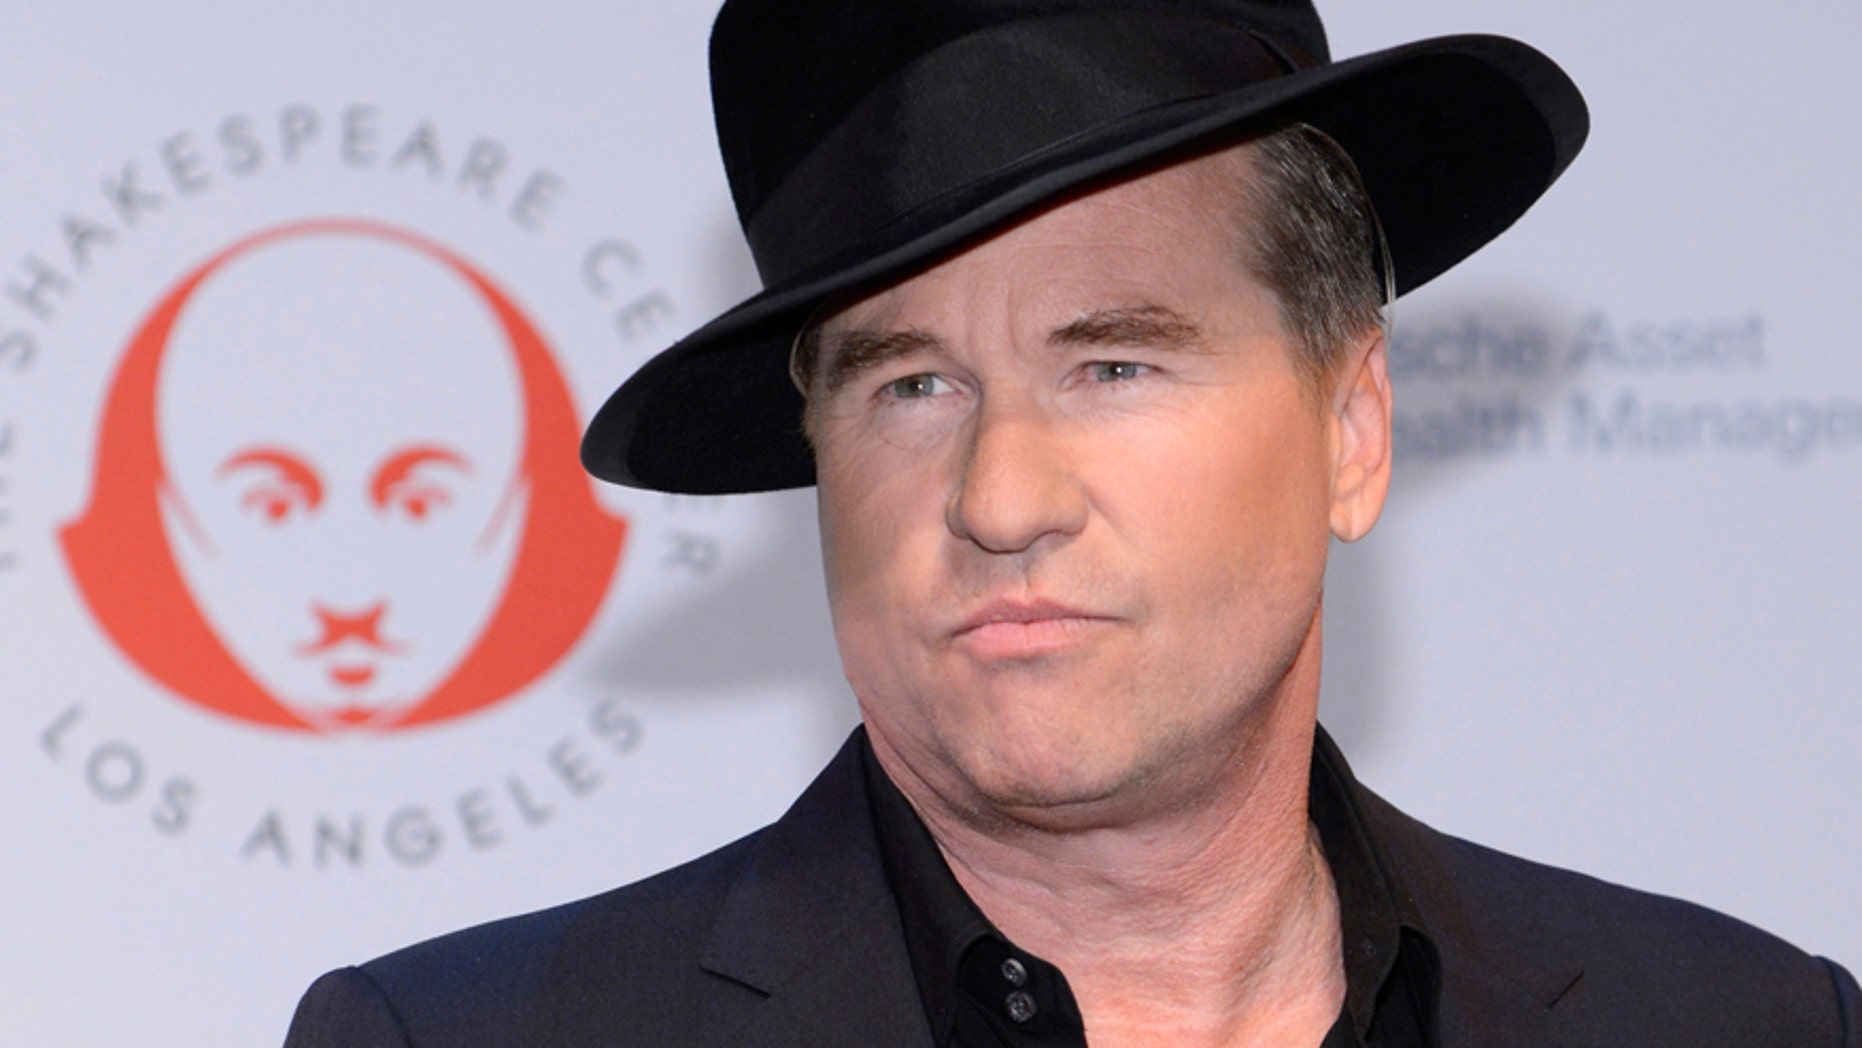 """Actor Val Kilmer attends The Shakespeare Center of Los Angeles 23rd Annual Simply Shakespeare benefit reading of """"The Two Gentlemen of Verona"""" in Santa Monica, California September 25, 2013."""